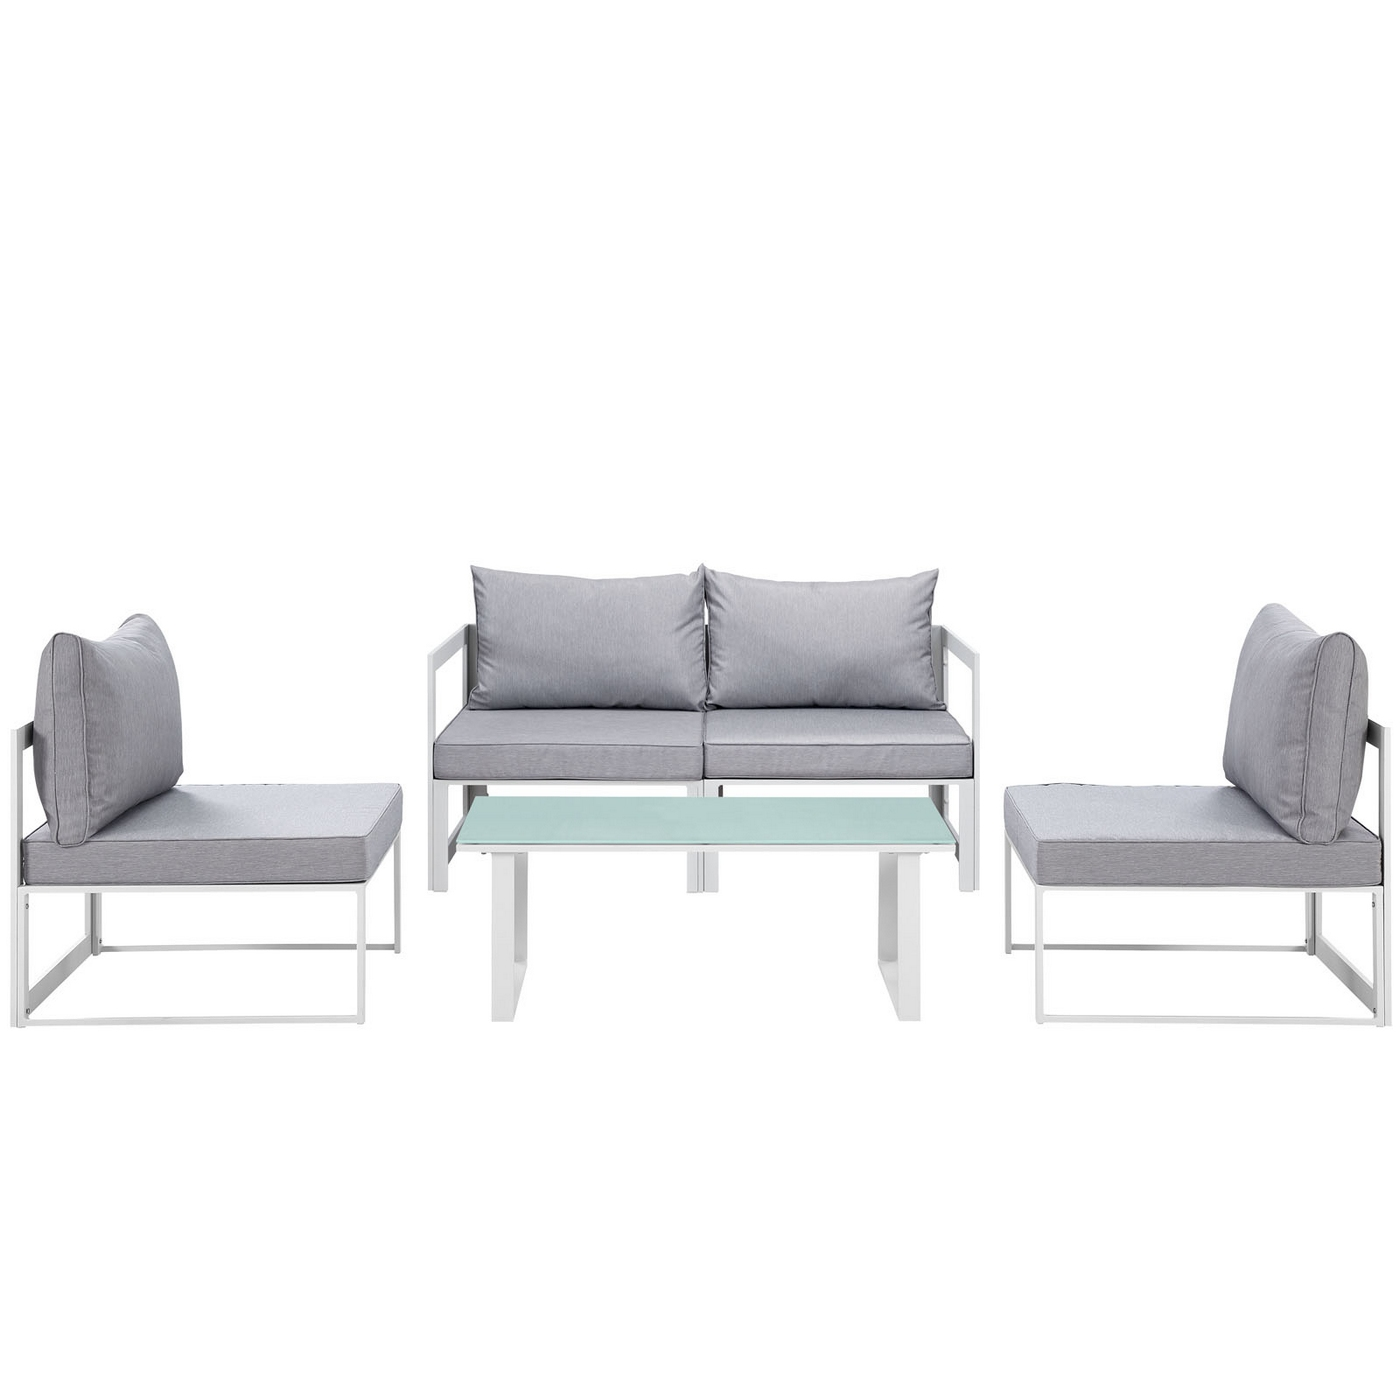 Sectional Gray Sofa Set: Fortuna 5pc Outdoor Patio Sectional Sofa Set W